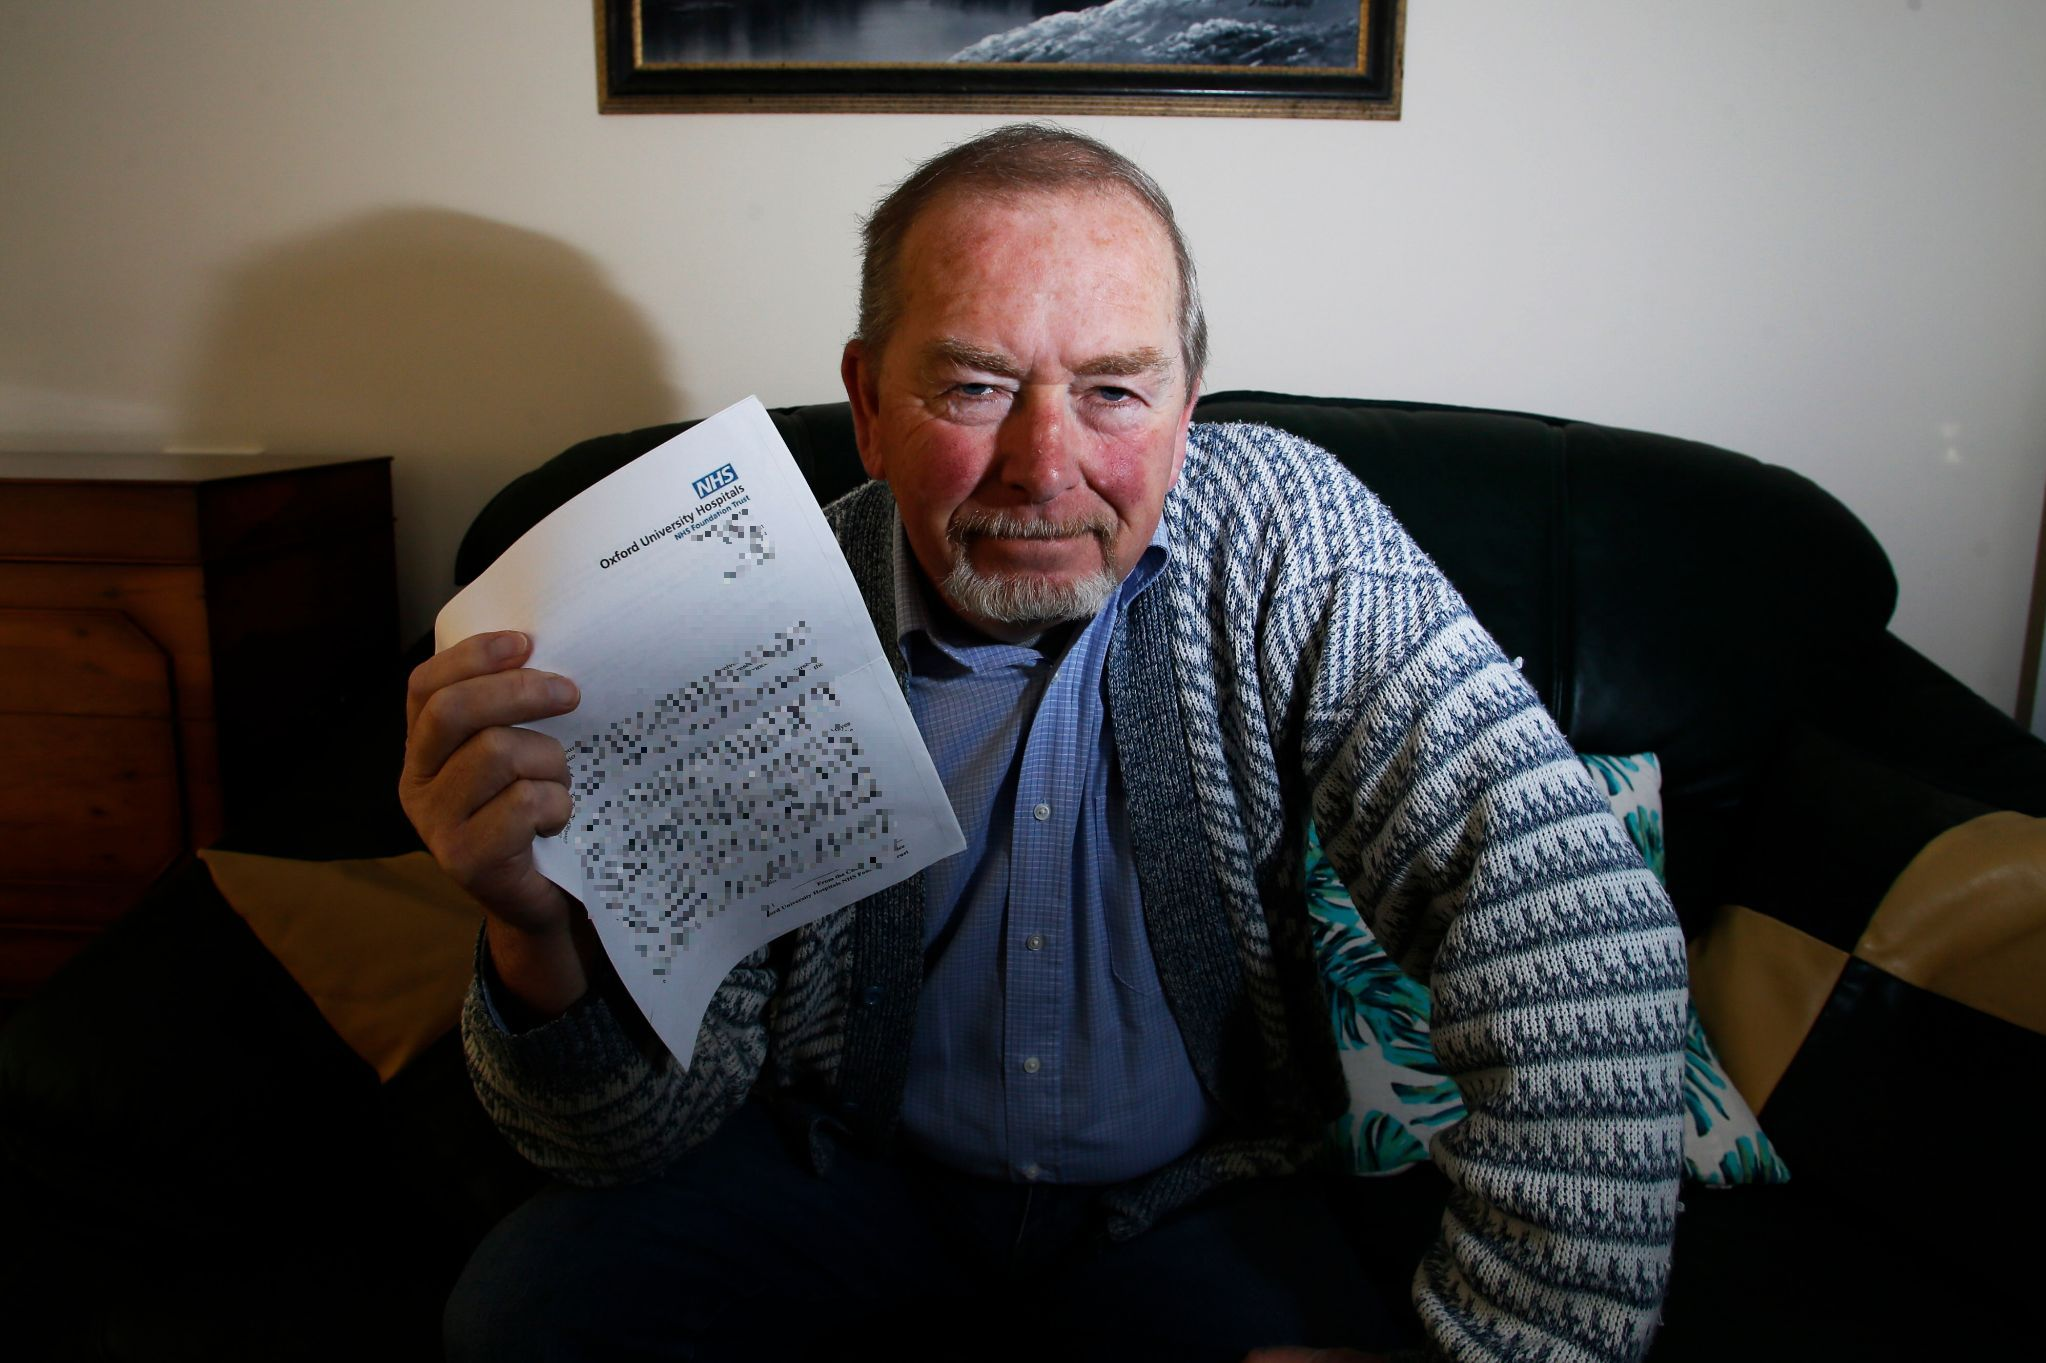 Pensioner told he 'had cancer' due to medical records